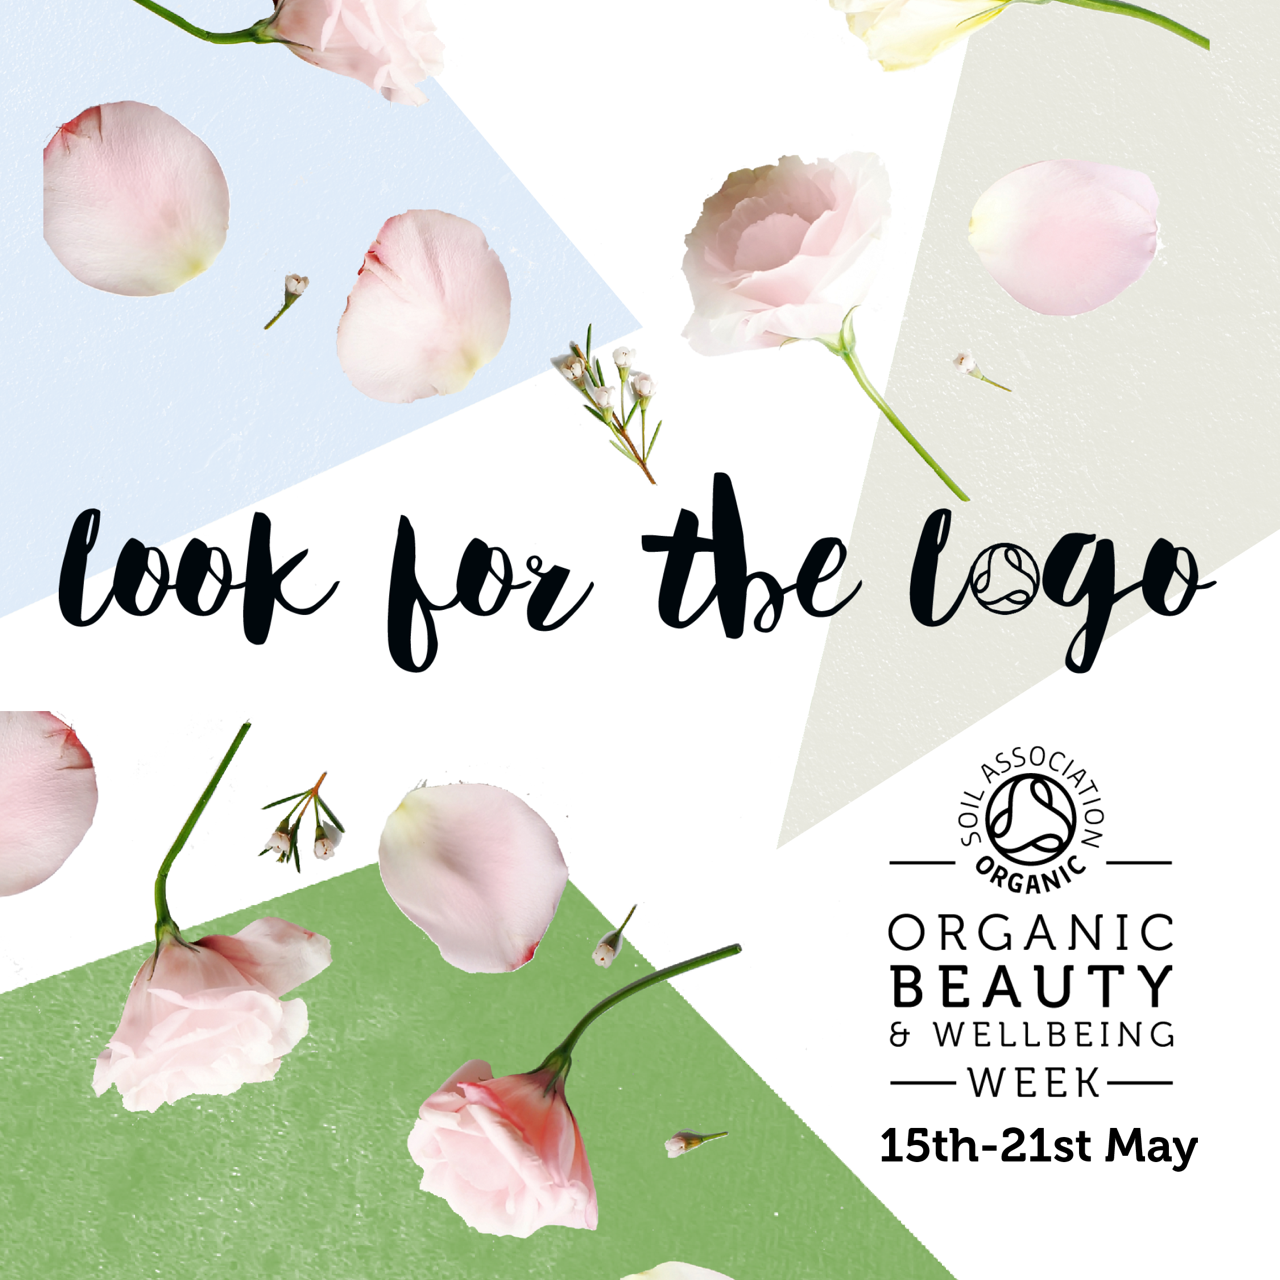 Organic Beauty and Wellbeing Week :)